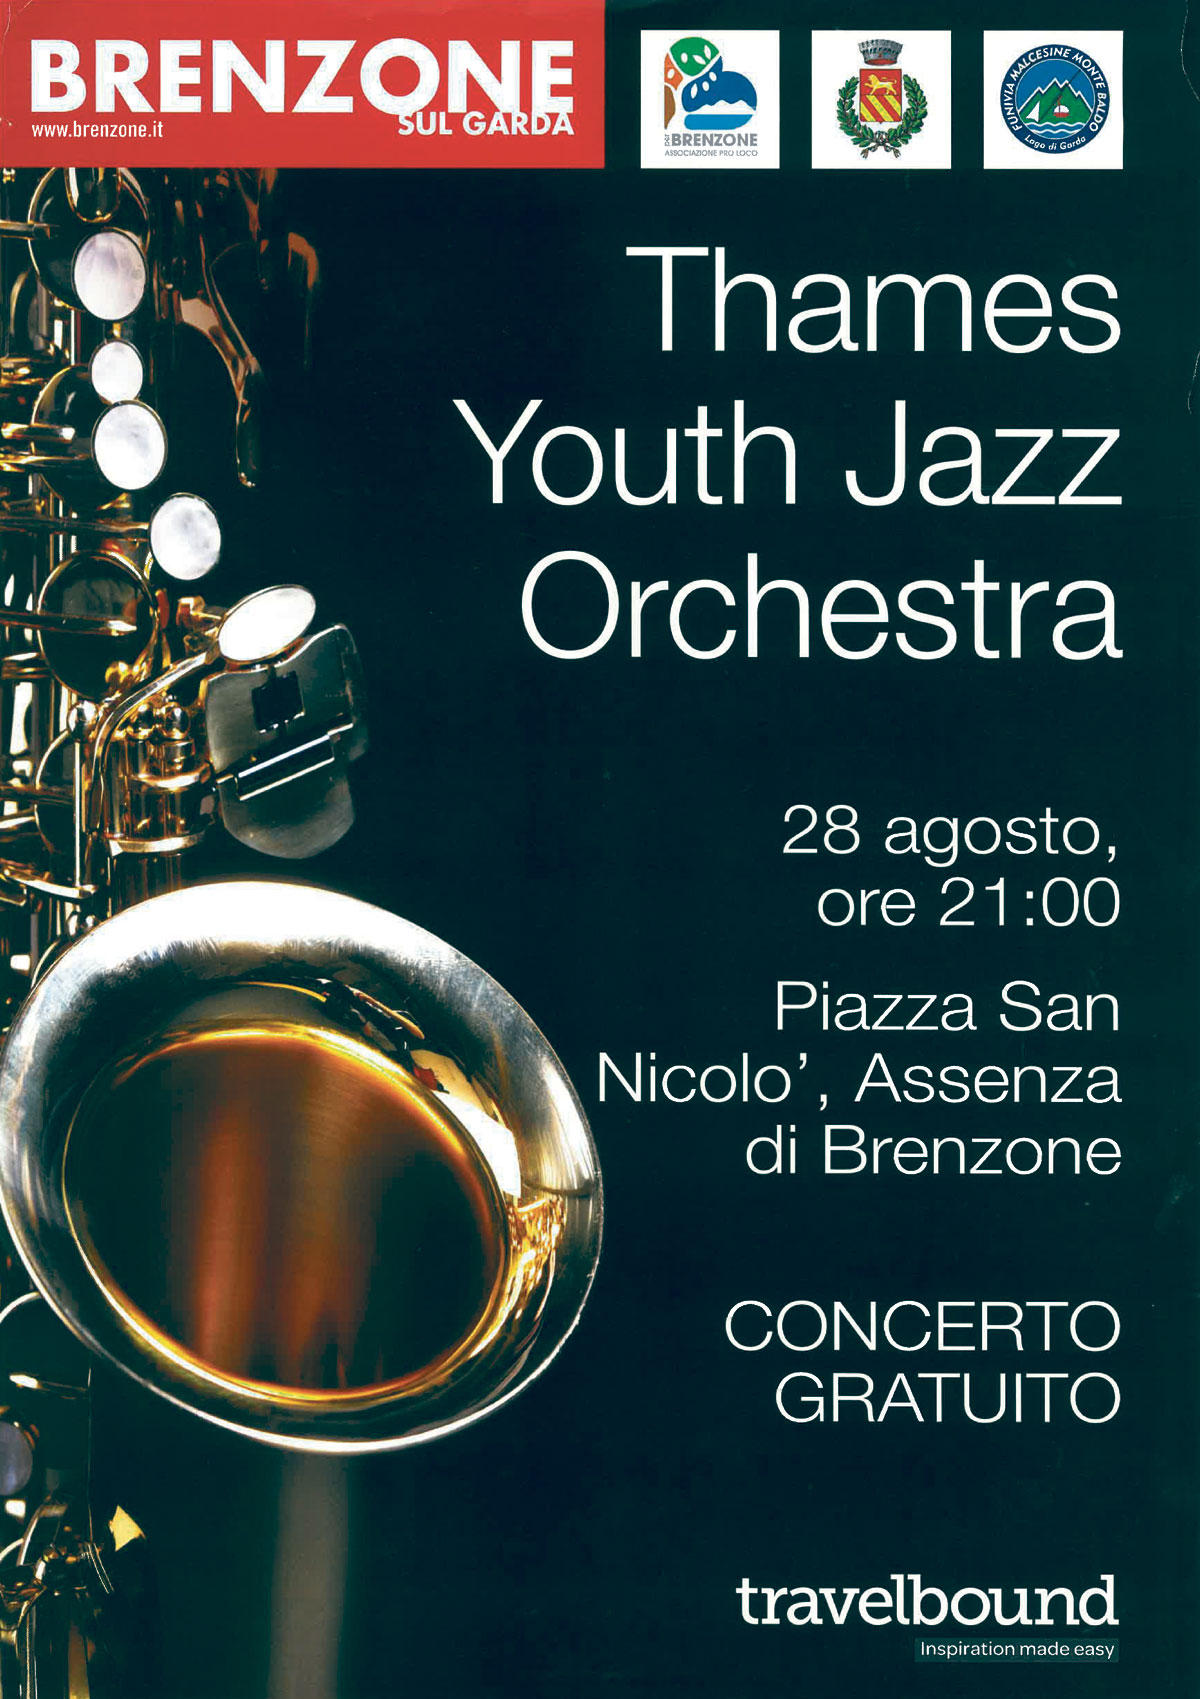 Thames Youth Jazz orchestra: 28.08.2018